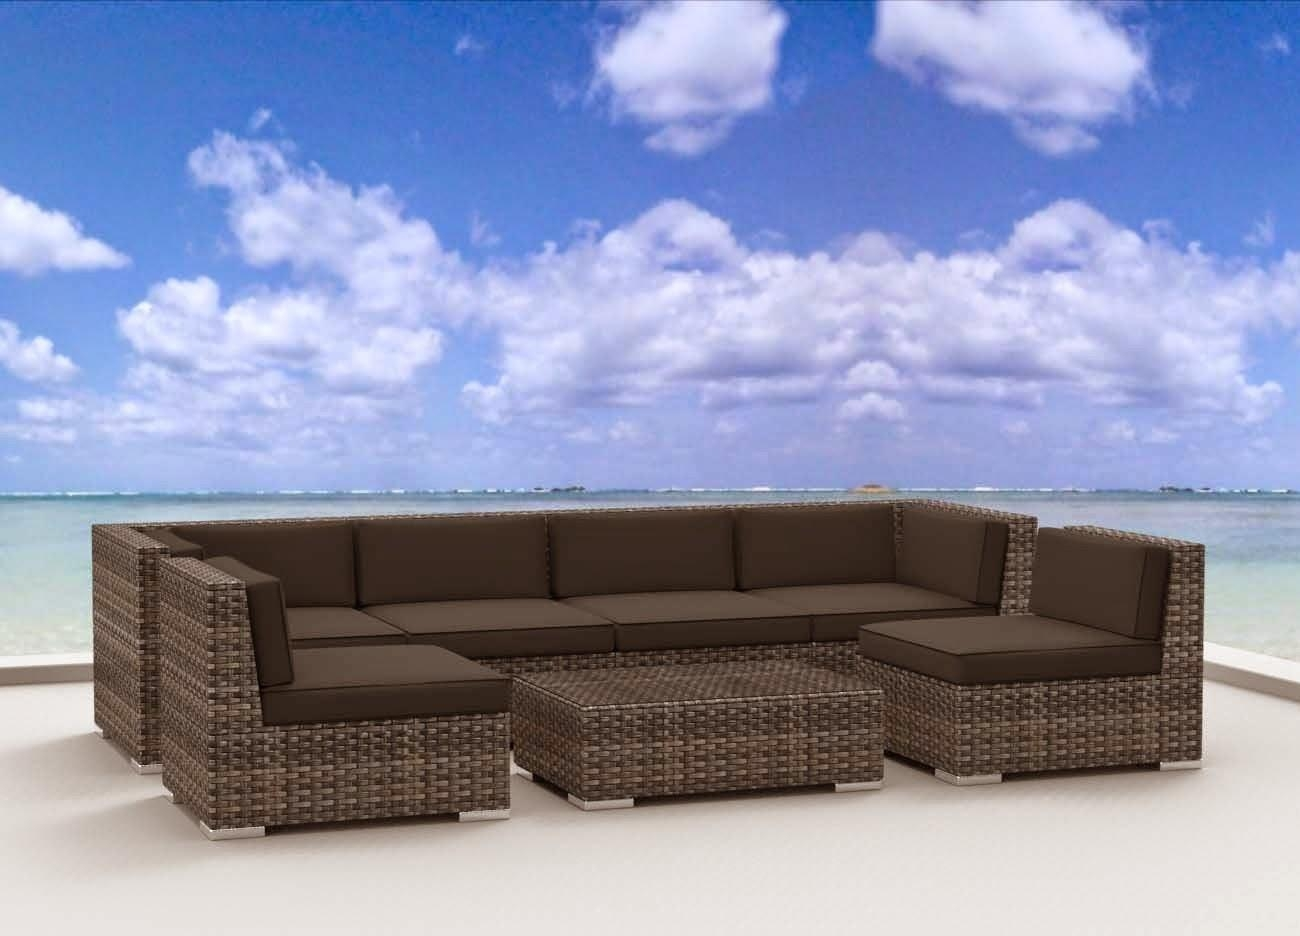 Urban Furnishing Modern Outdoor Backyard Wicker Rattan Patio with Modern Rattan Sofas